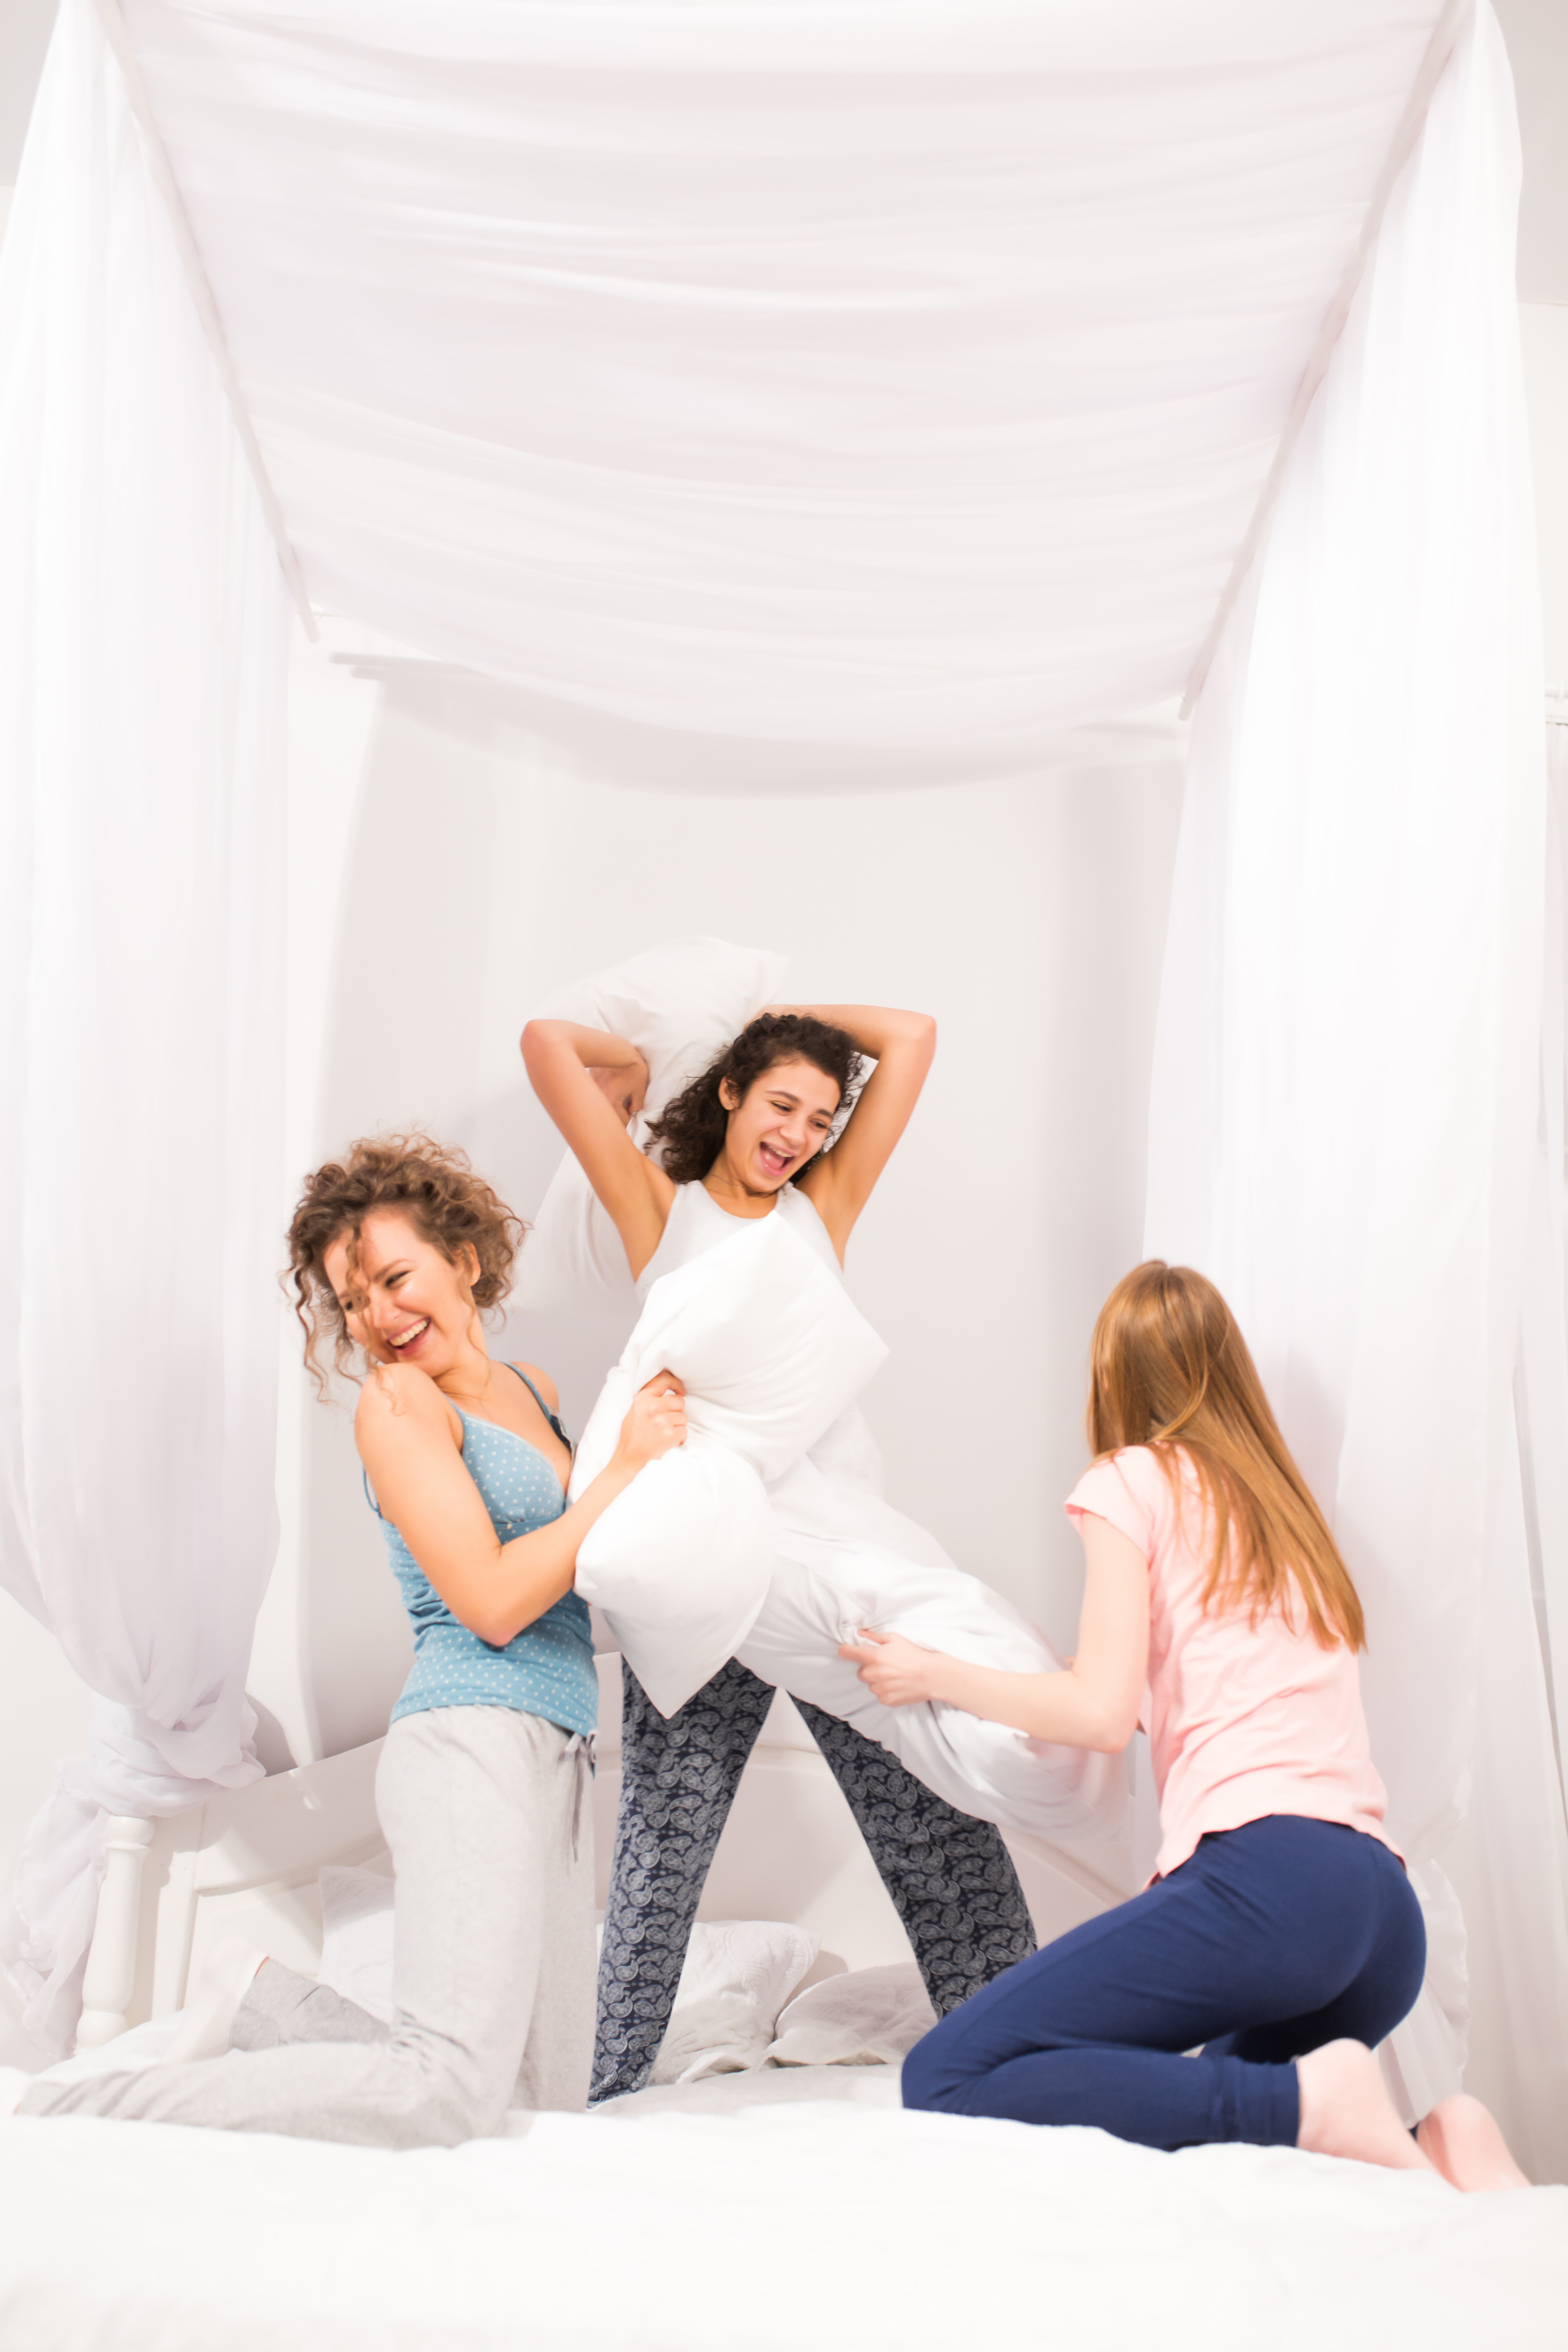 Girls in bed having pillow fight in pajamas at slumber party in bedroom